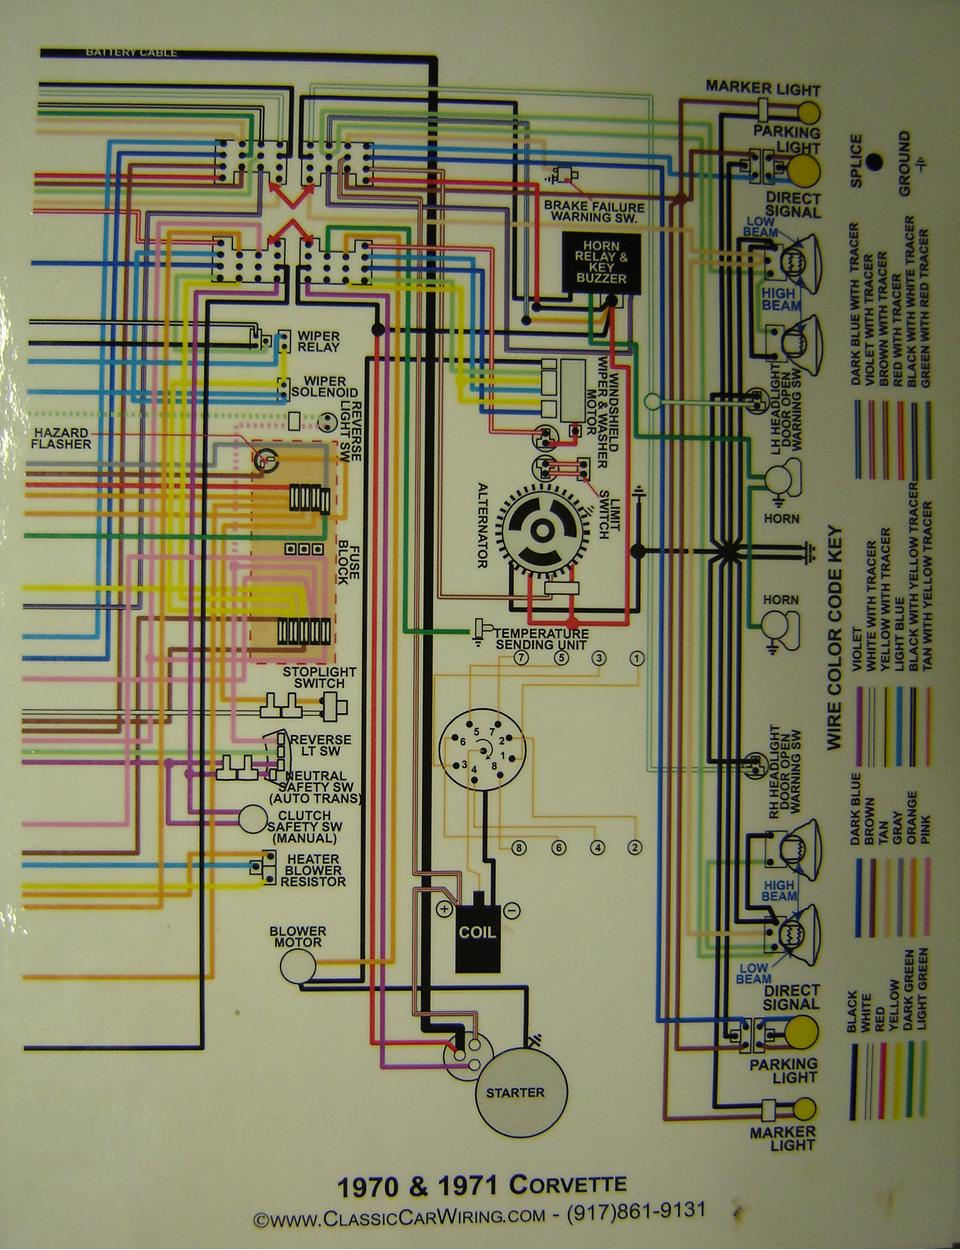 Chevy diagrams 1971 Chevelle Wiring 1972 Chevelle Engine Wiring Diagram 70 Chevelle Wiring Harness Diagram on 71 chevelle door diagram wiring schematic